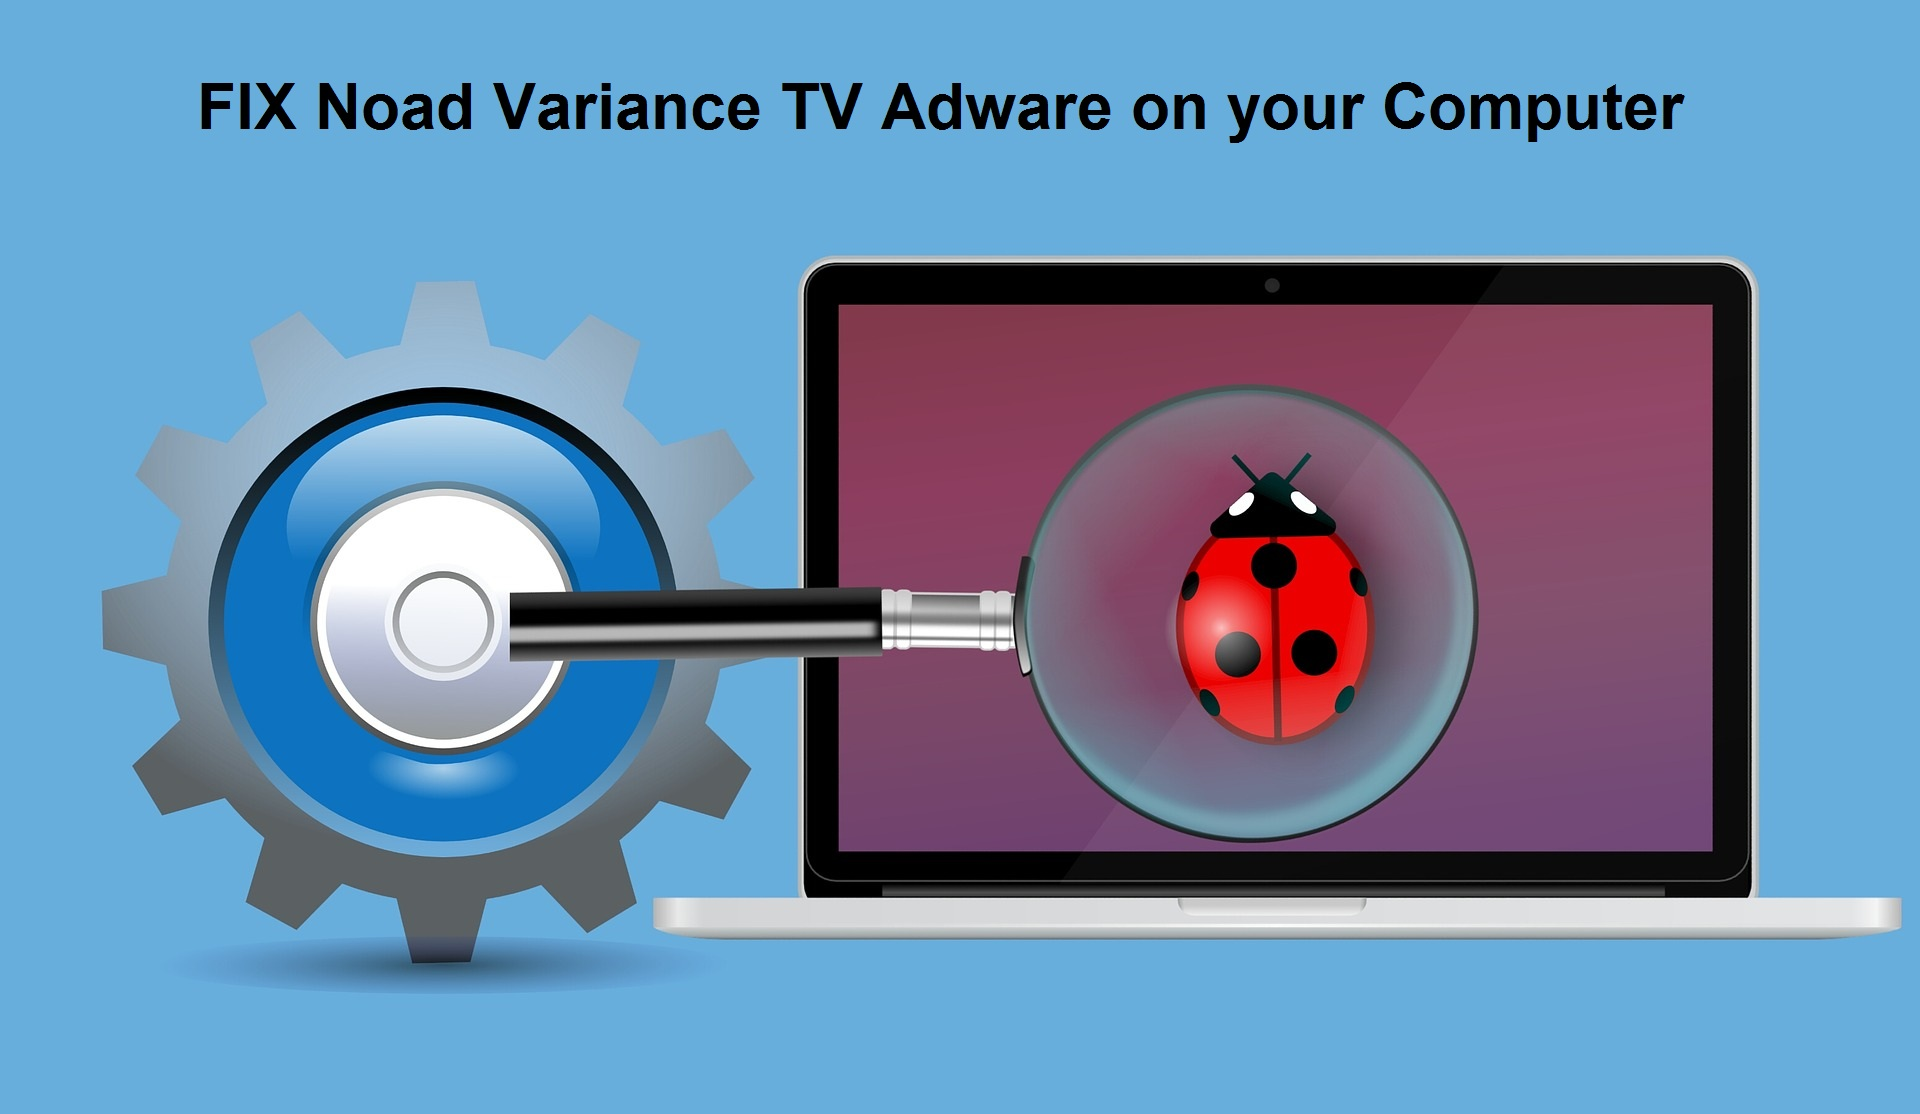 How to Remove or Delete the Noad Variance TV Adware on your Computer